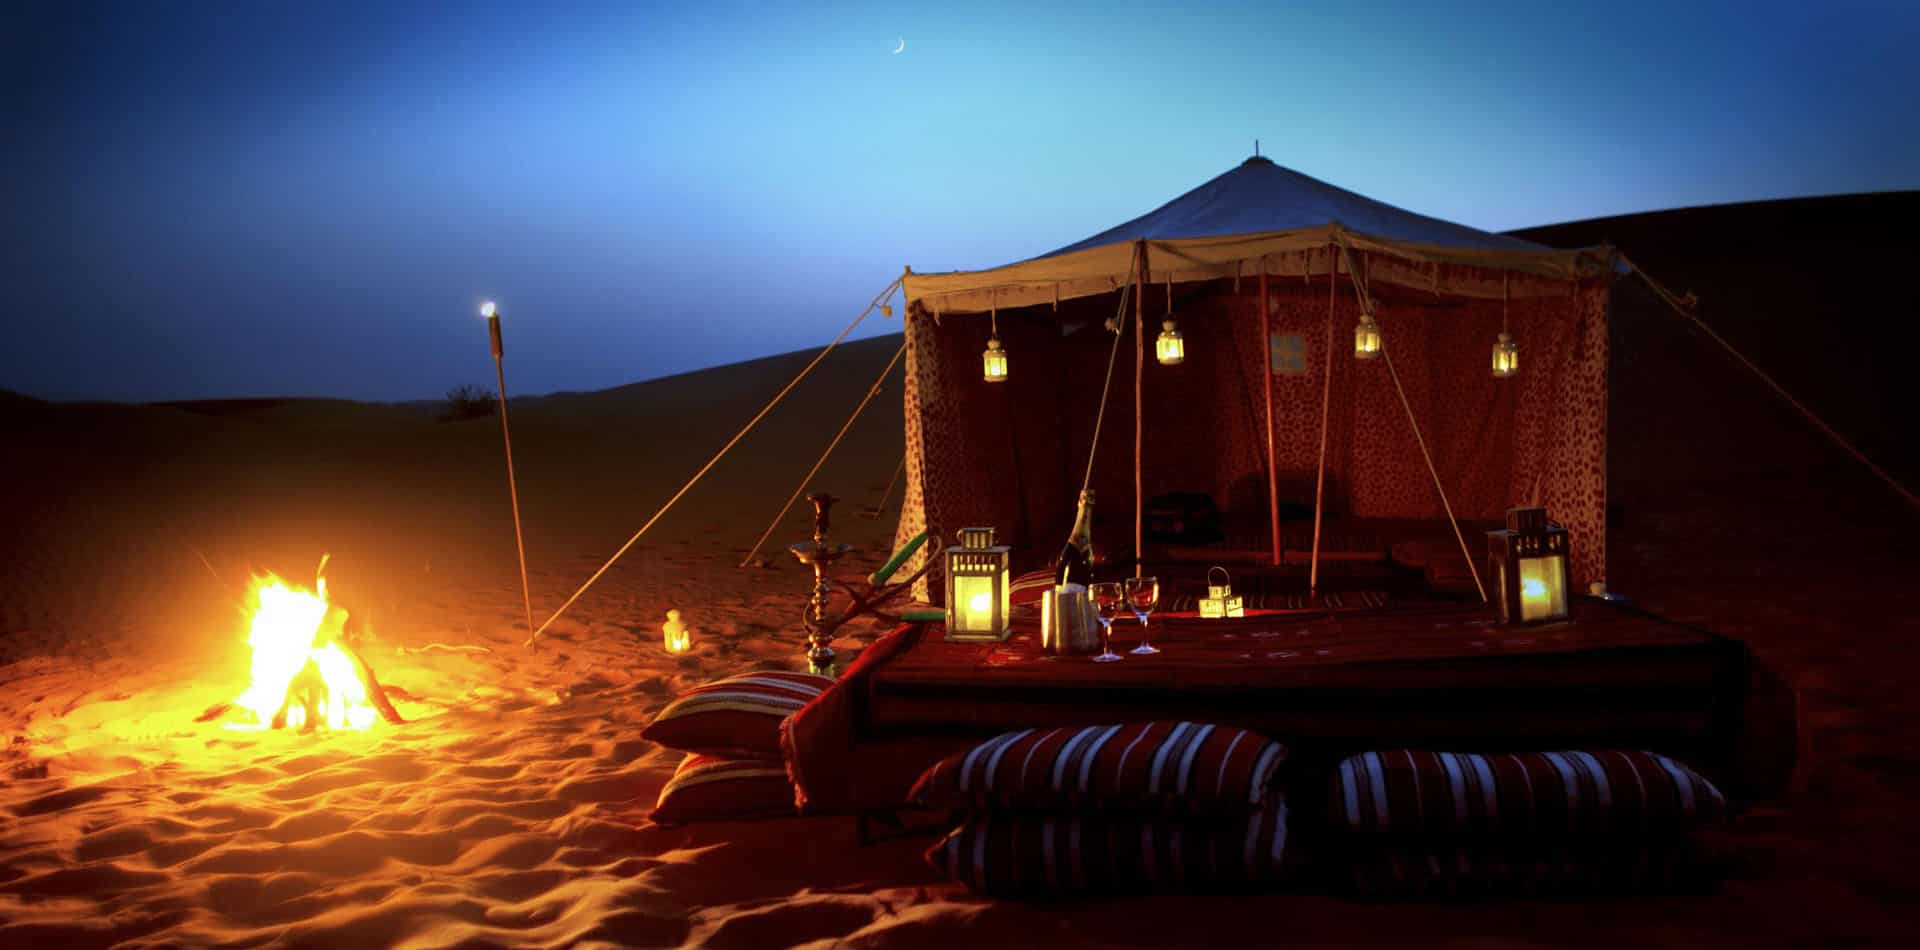 Desert Safari Overnight Stay